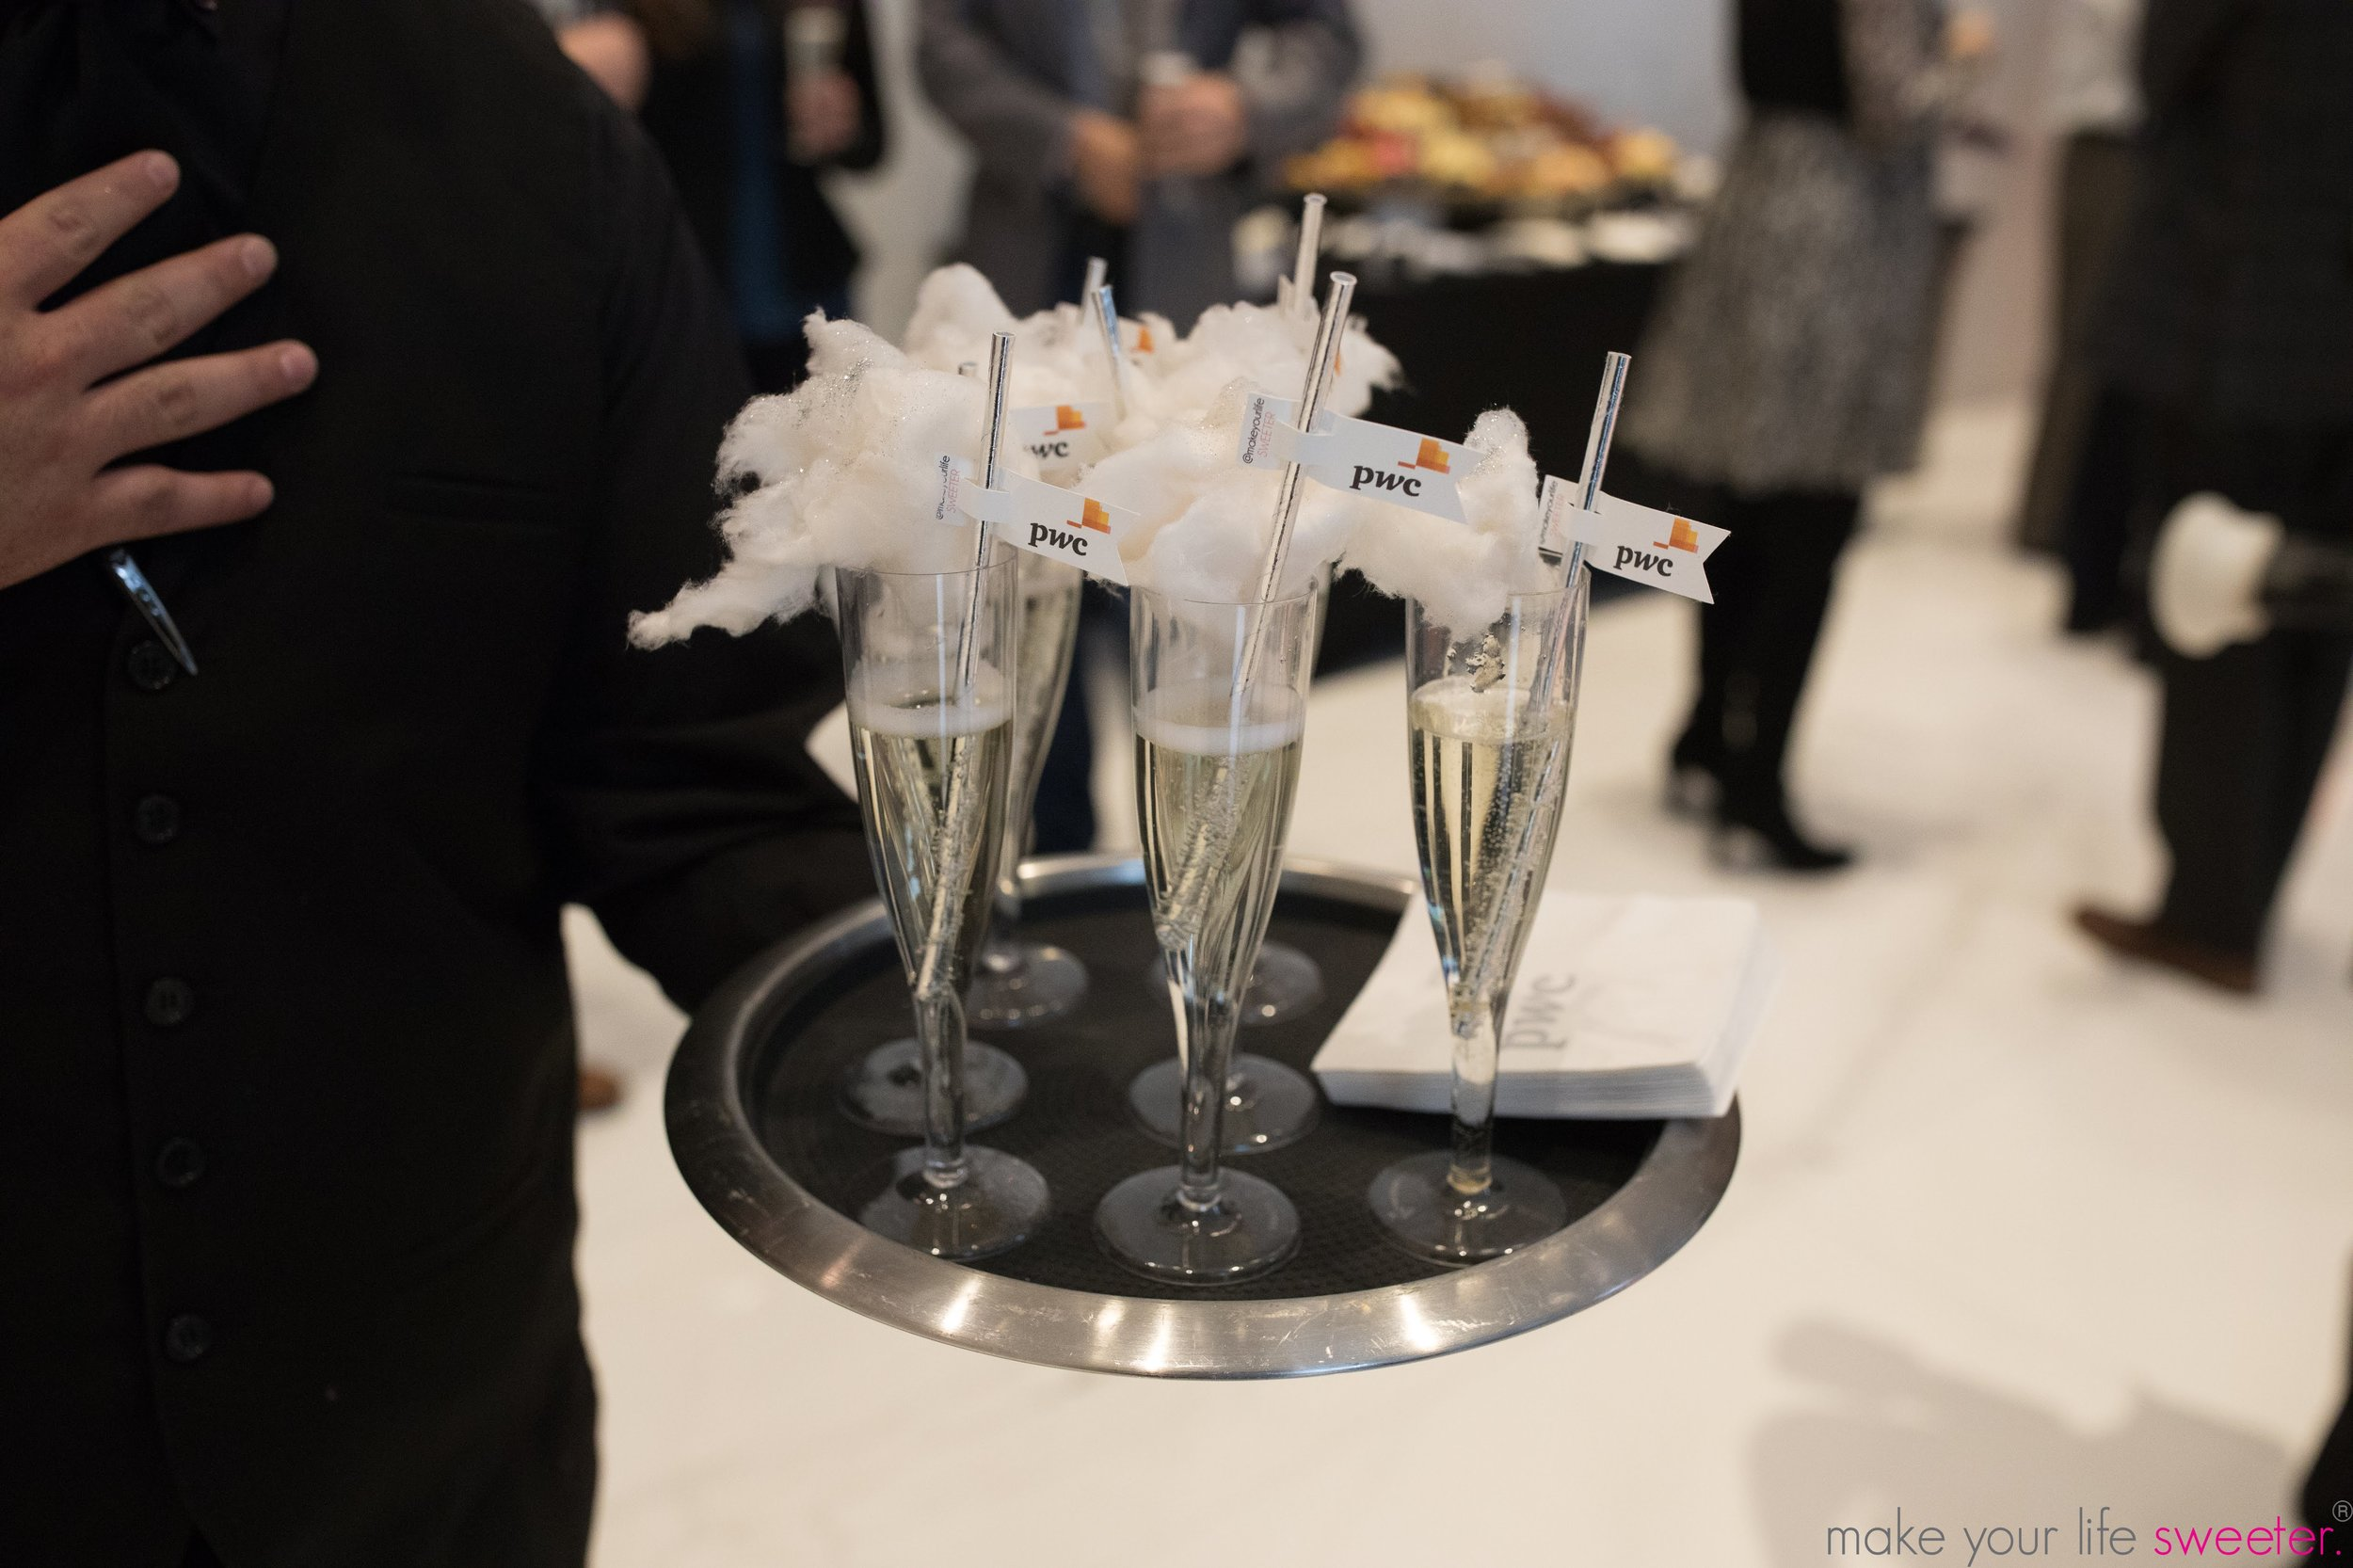 Make Your Life Sweeter Events: PWC Grand Opening - Sugaire Organic Cotton Candy Infusion with Customized PWC Straws